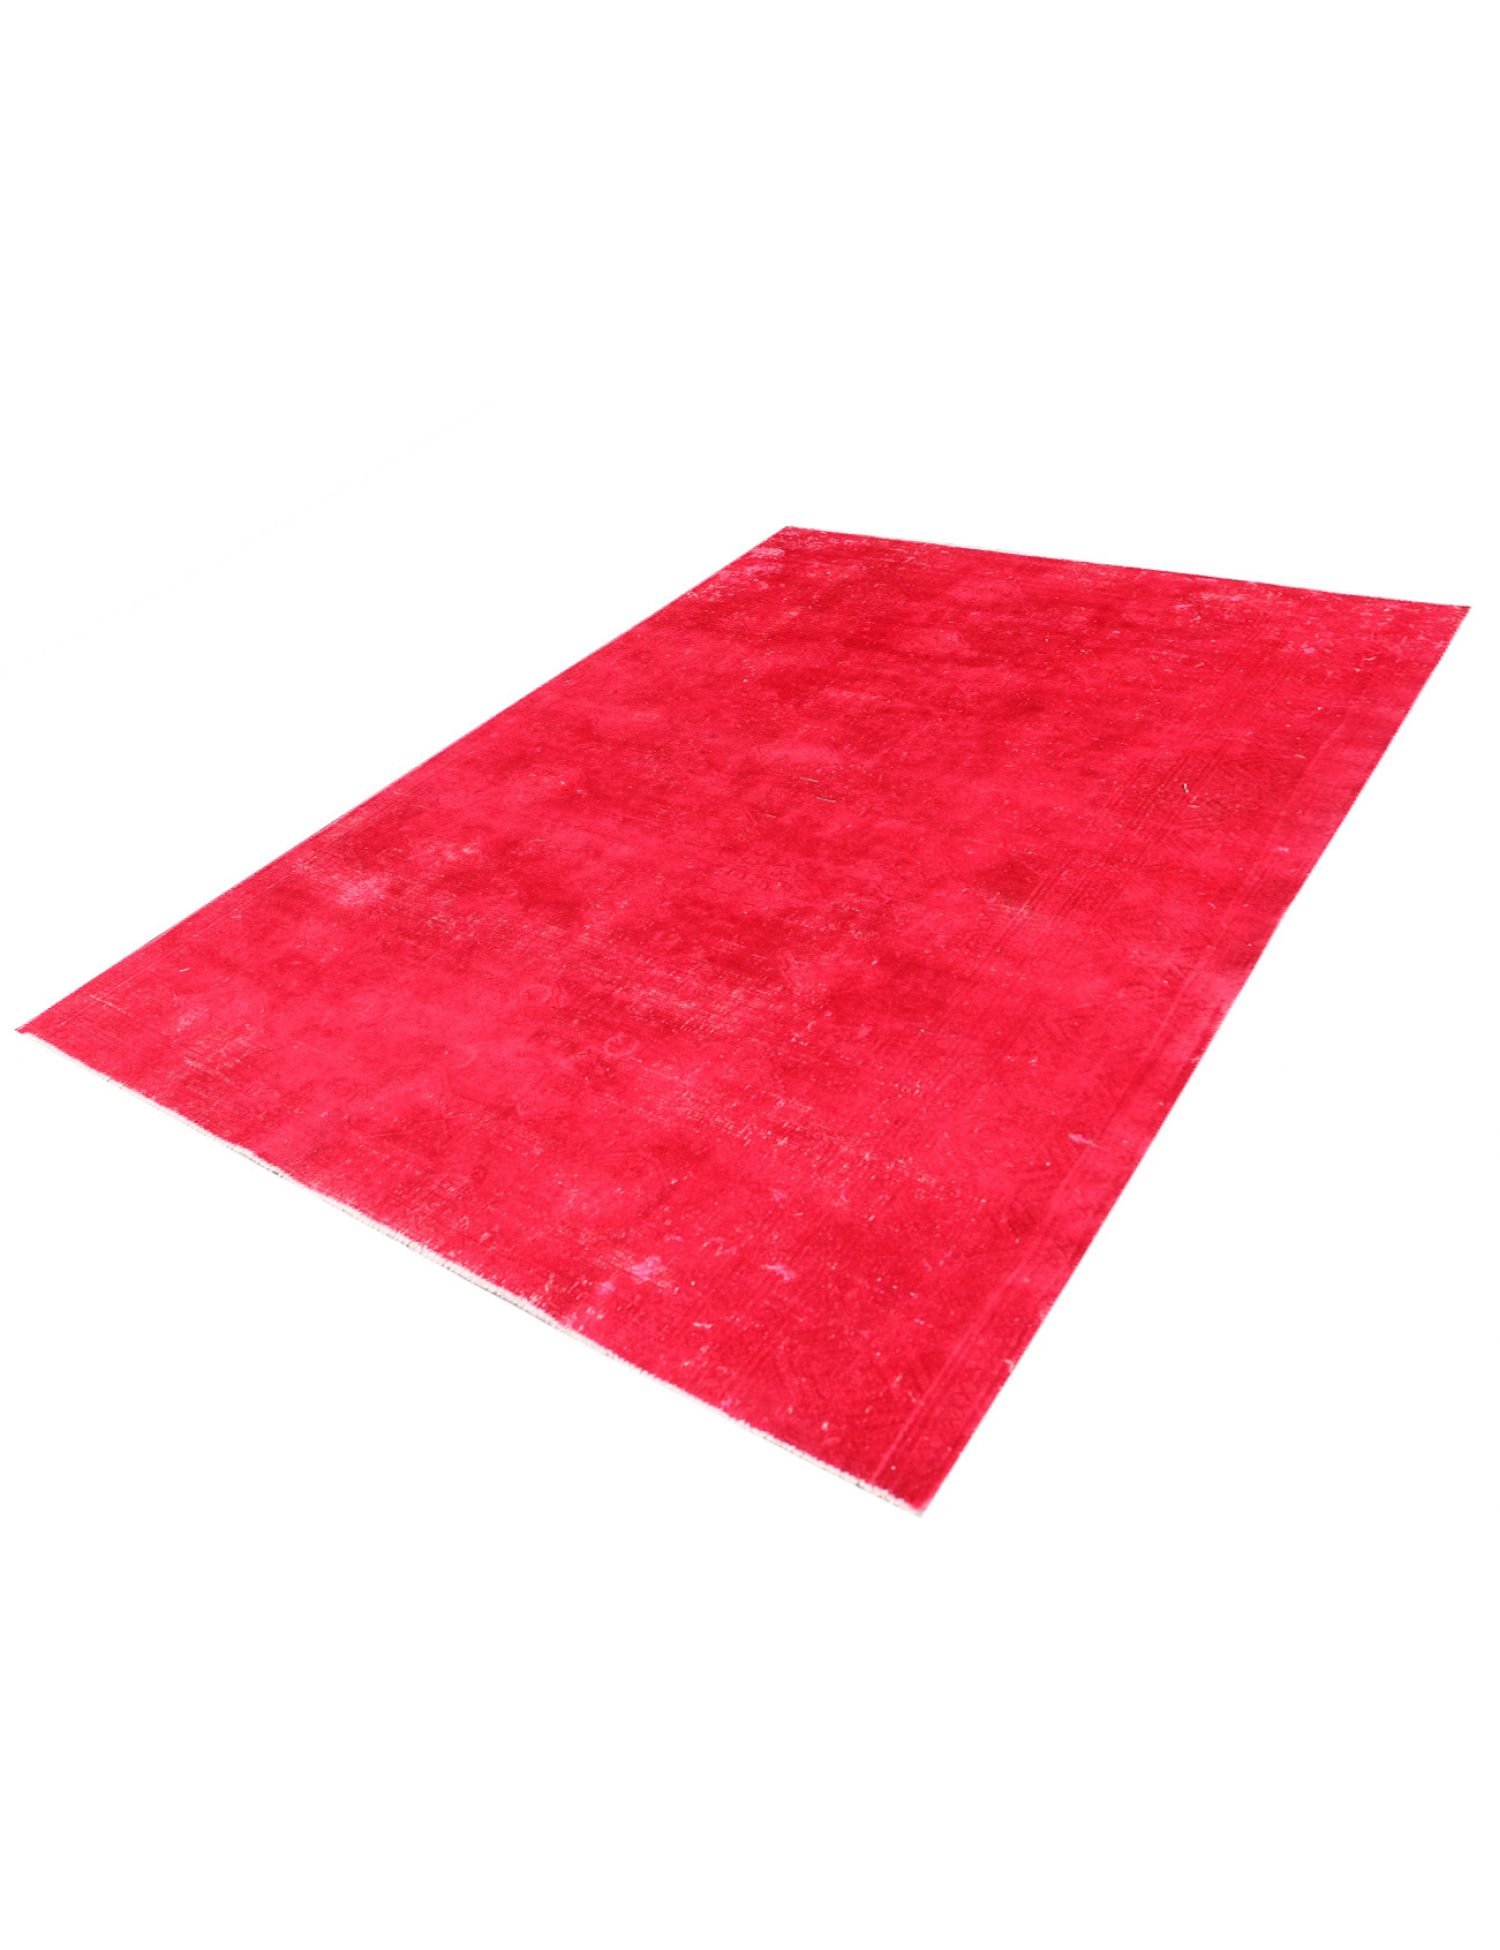 Vintage Carpet  red <br/>218 x 115 cm